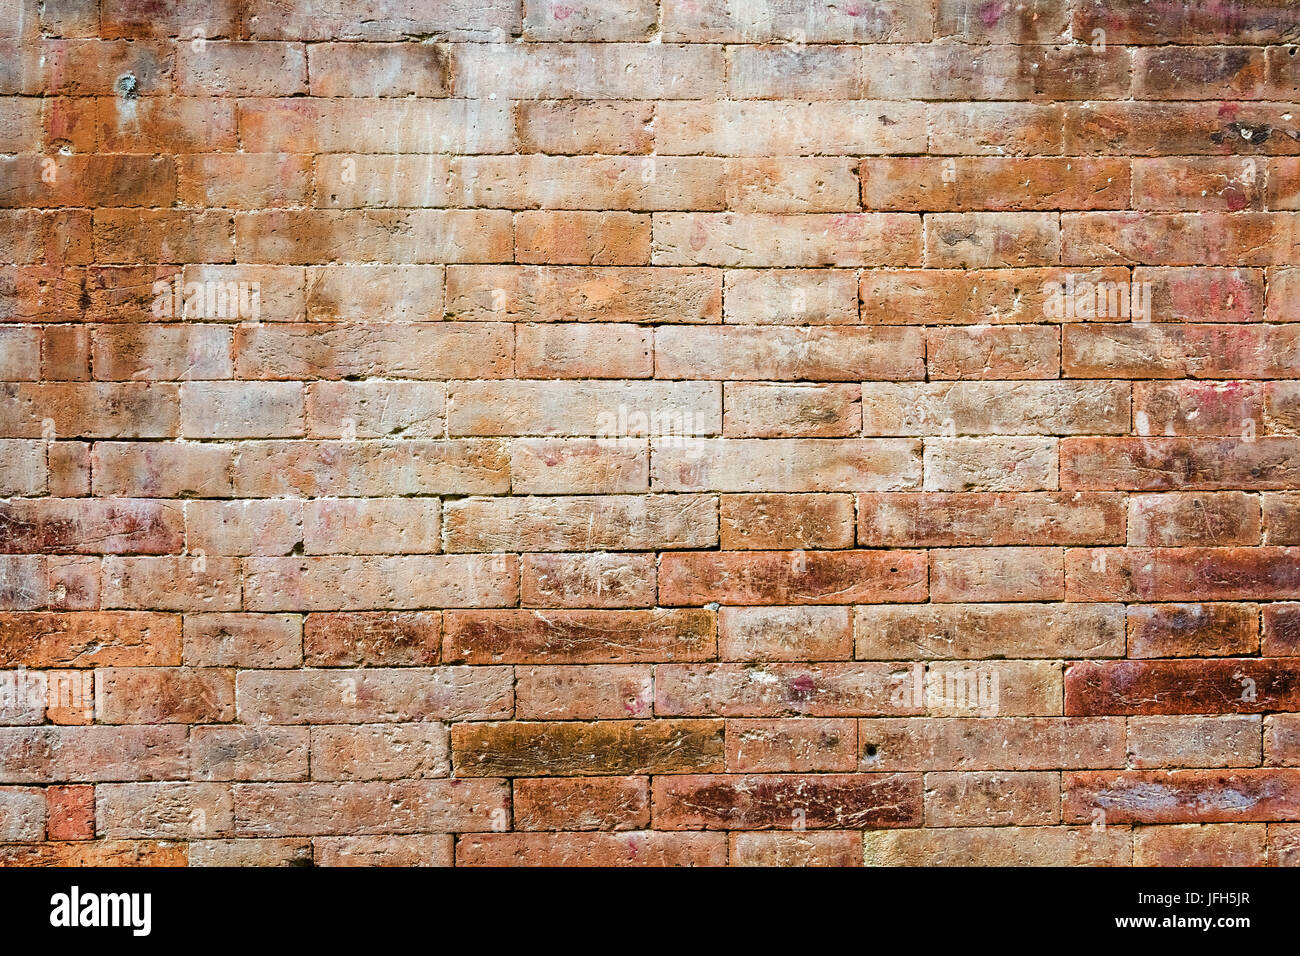 Clincer Wall   Stock Image